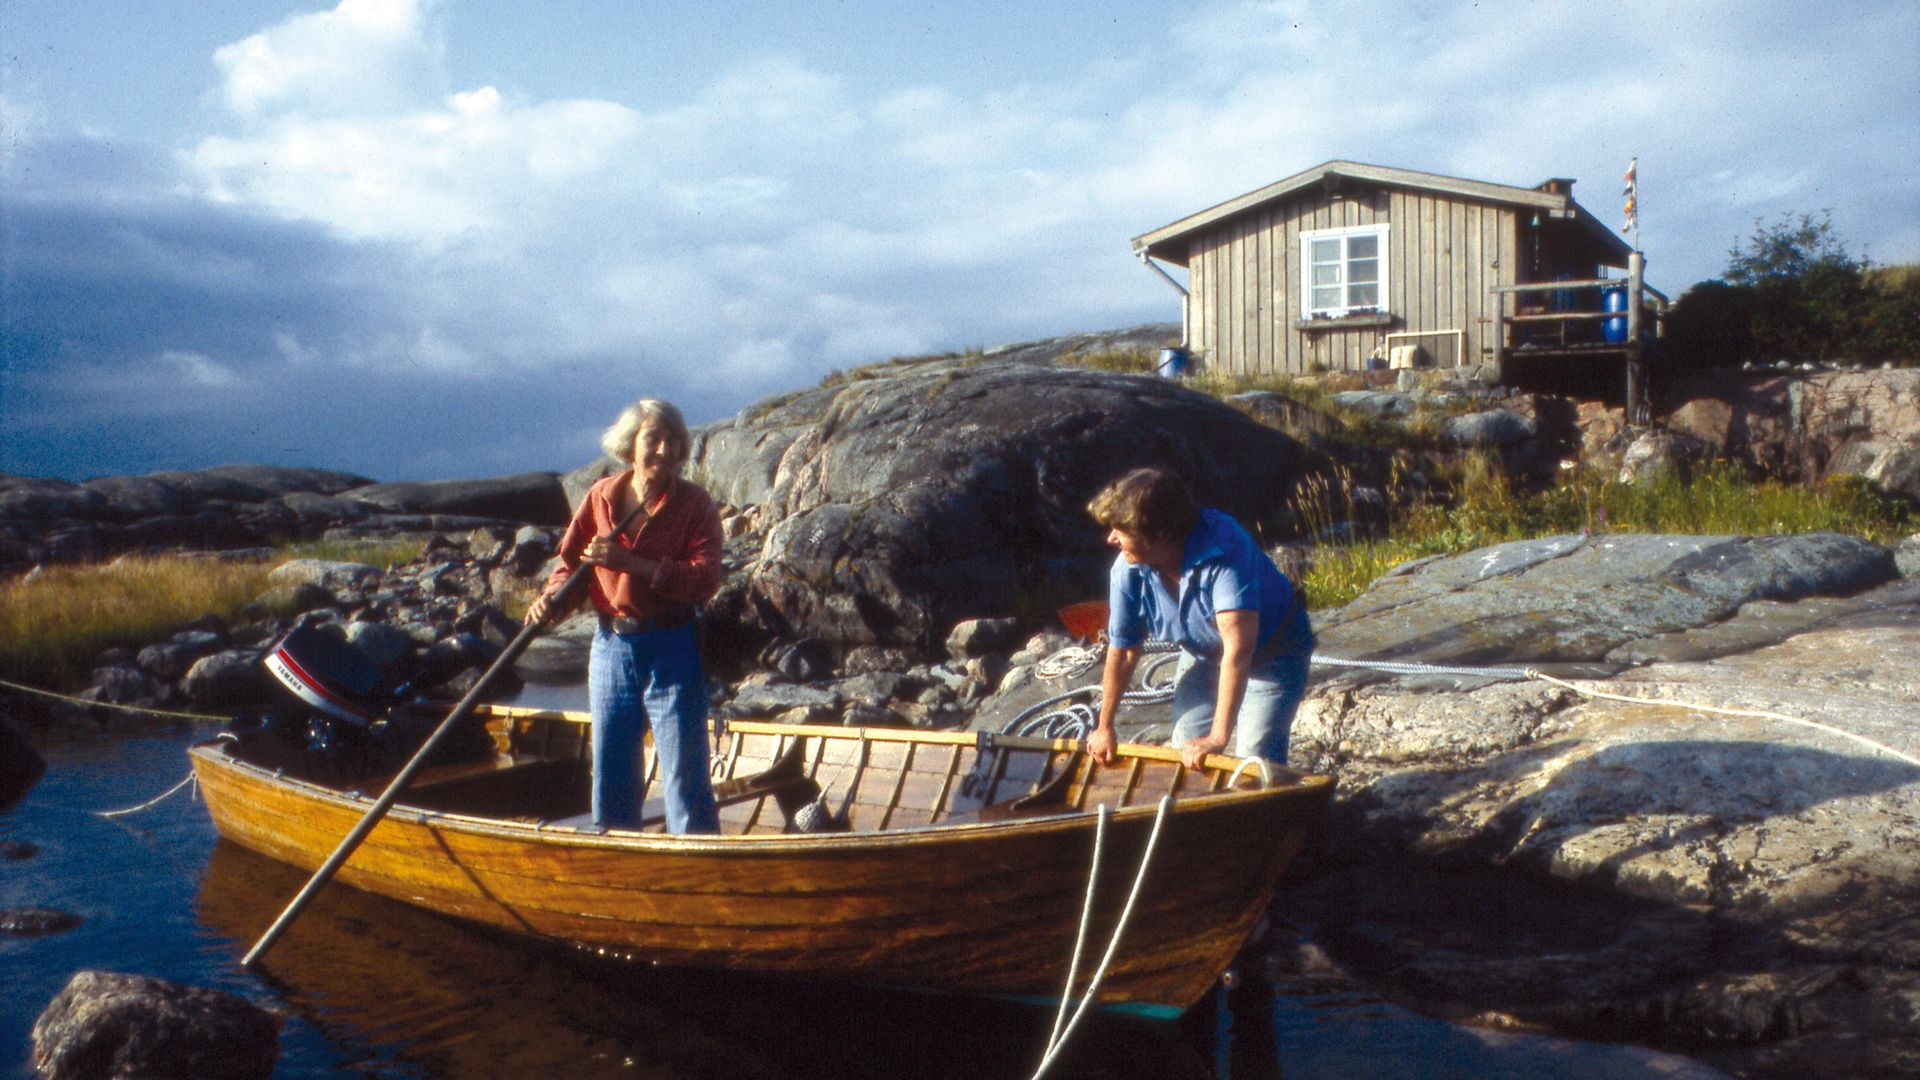 Tove Jansson and partner Tuulikki Pietilä on the island of Klovharun with their cabin behind them - Credit: © Moomin Characters™